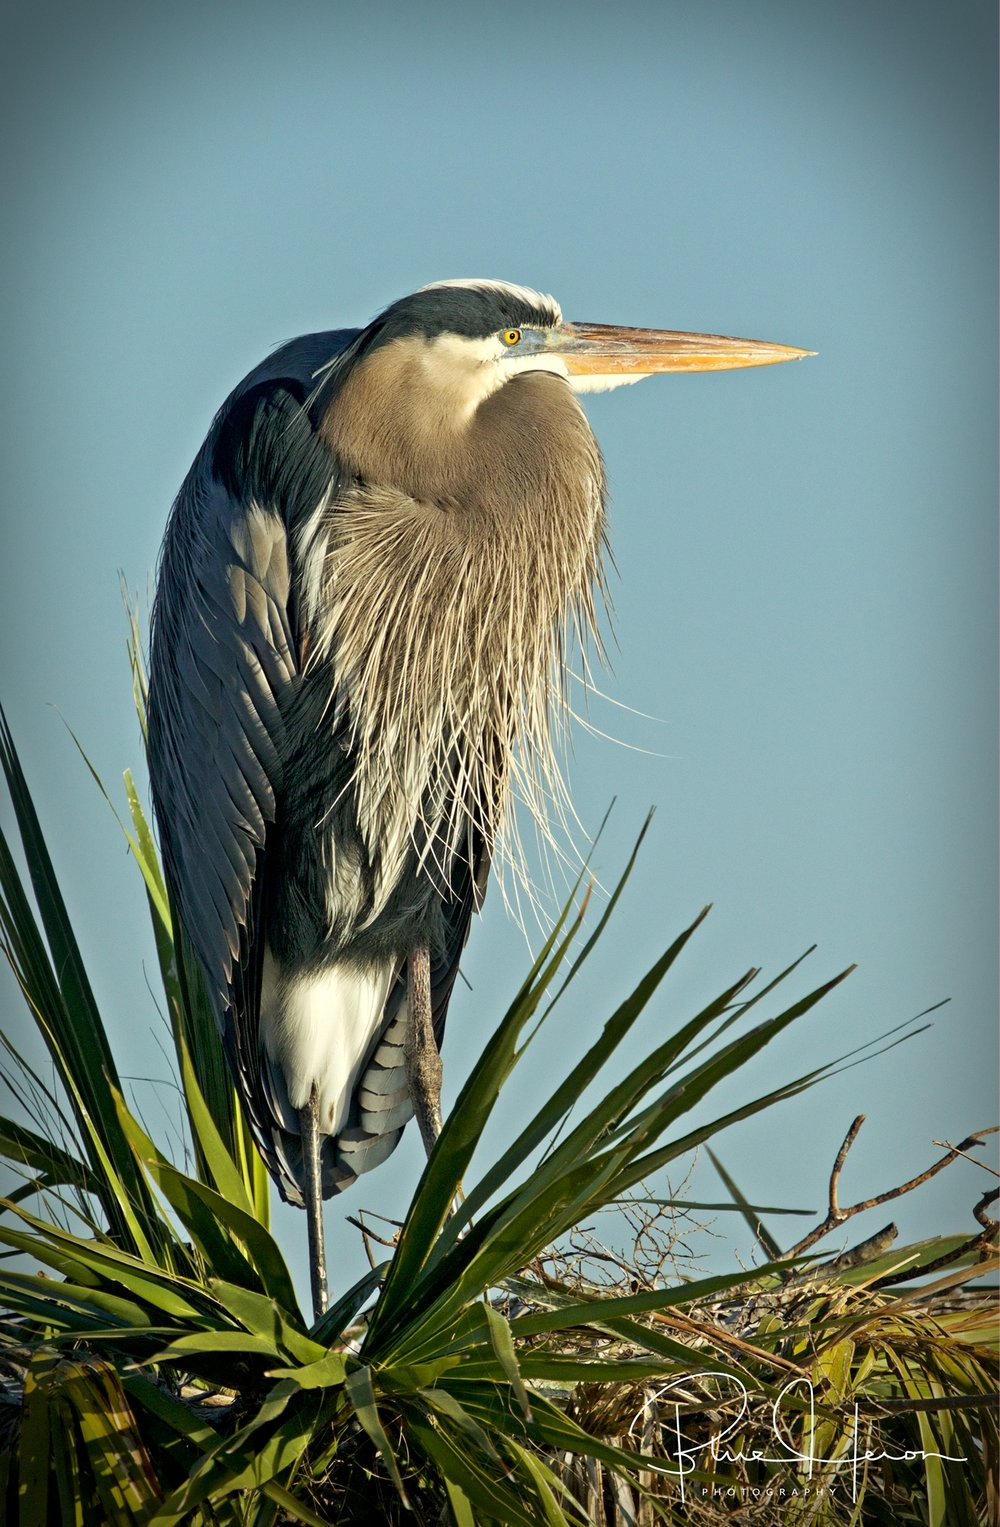 Male Great Blue Herons stake out a nest site and wait and wait for a mate to come check it out.